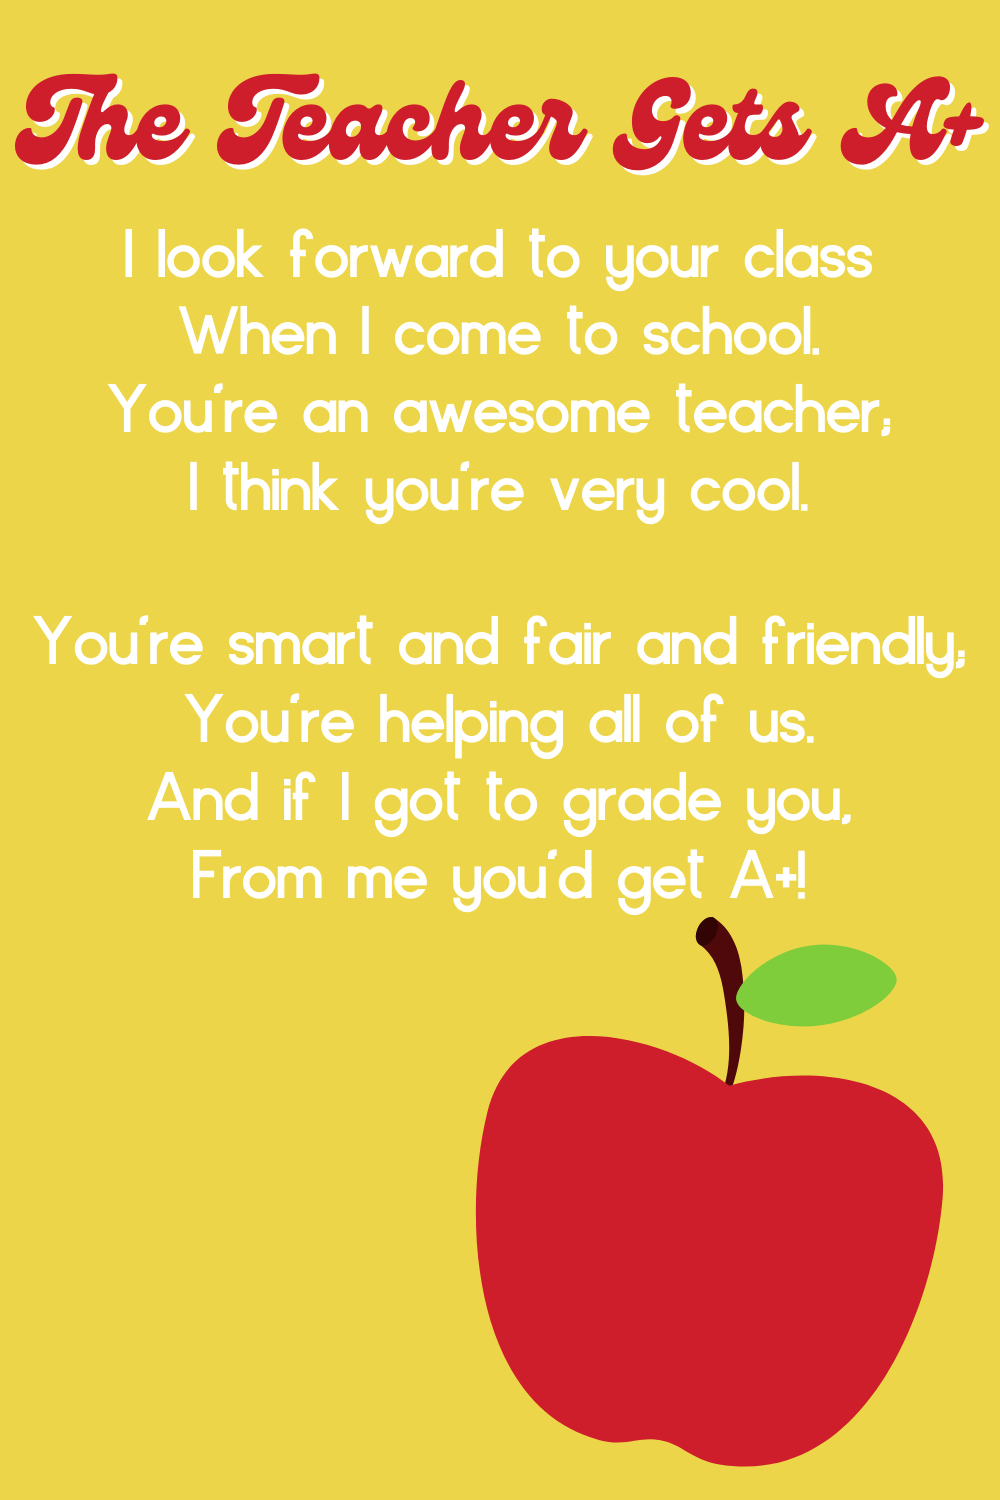 Thoughtful Teacher Appreciation Week Quotes In Poem Form